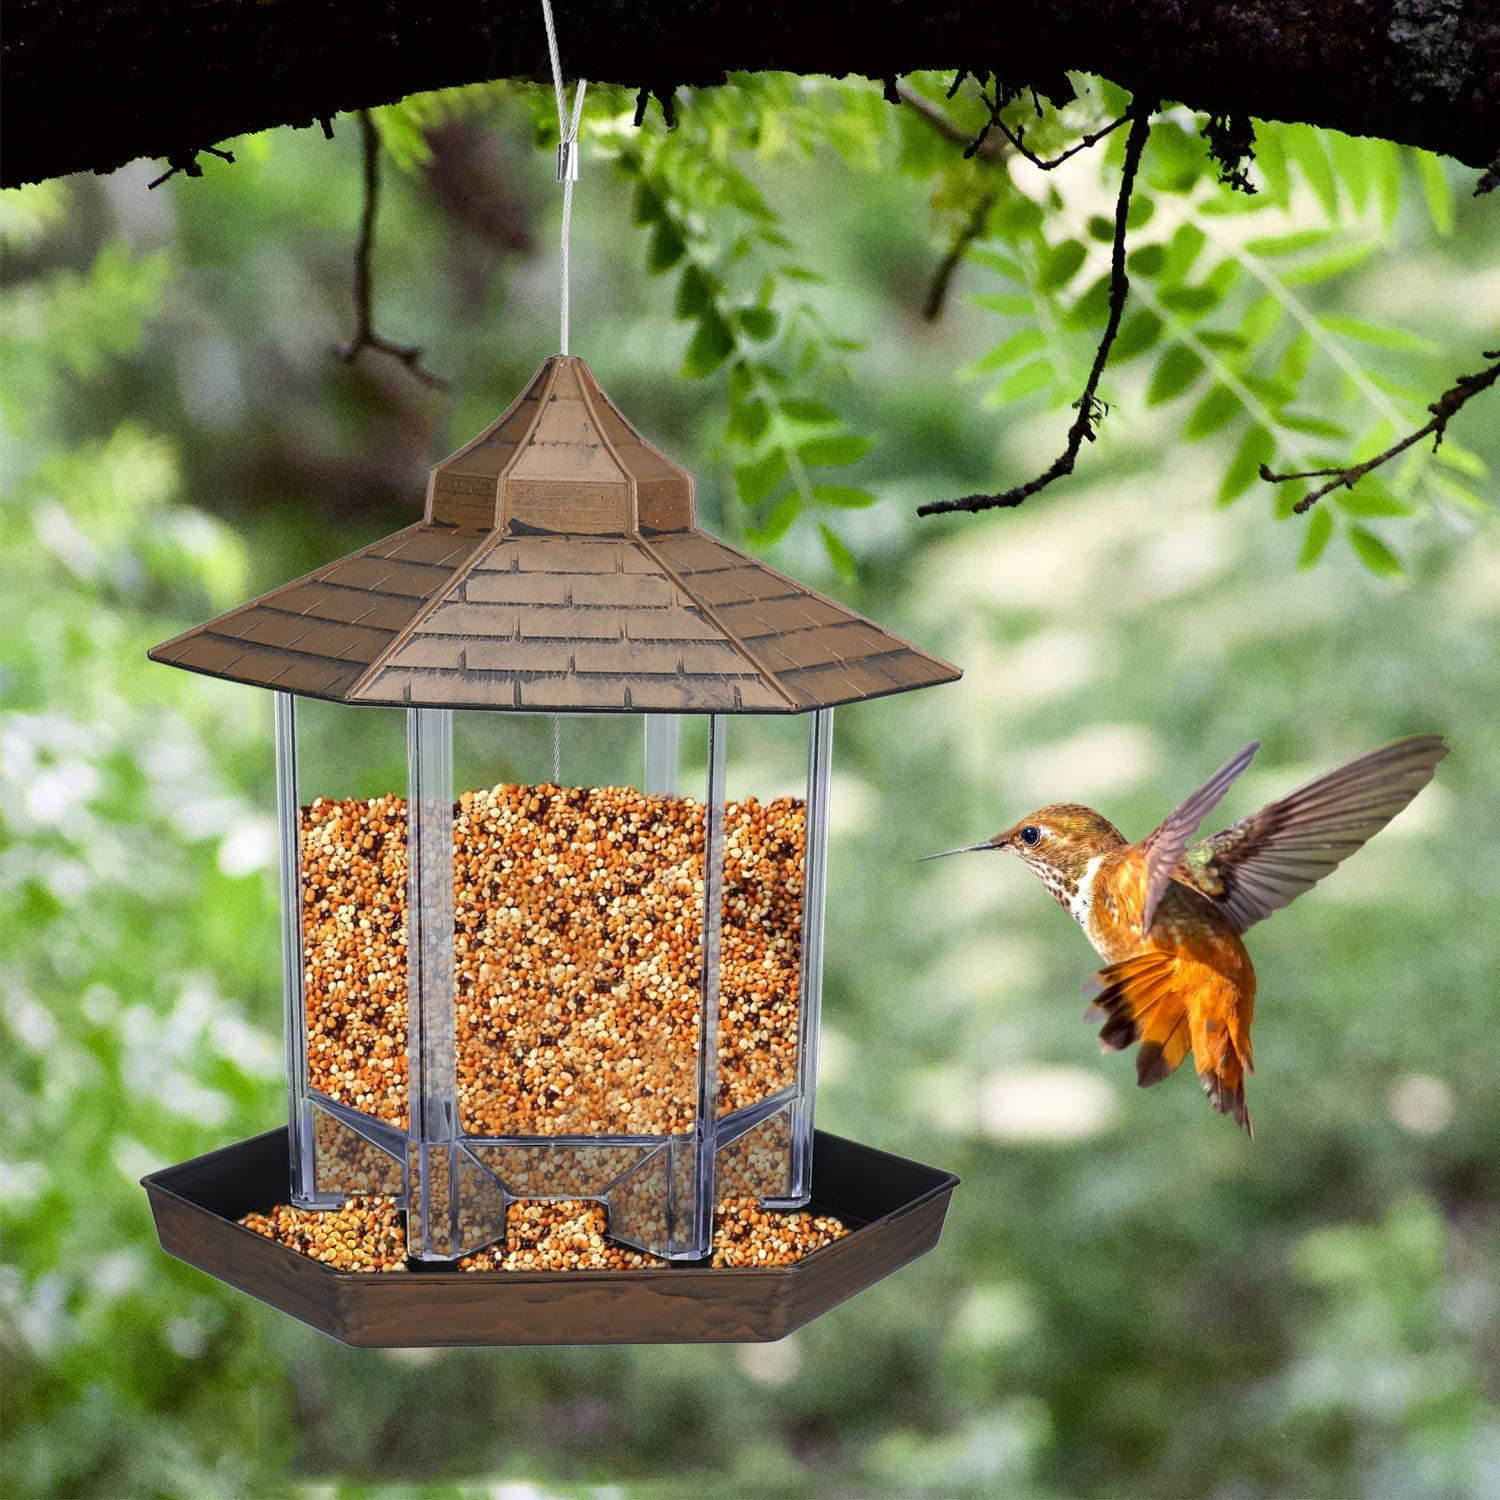 Plastic bird feeder hanging on the tree